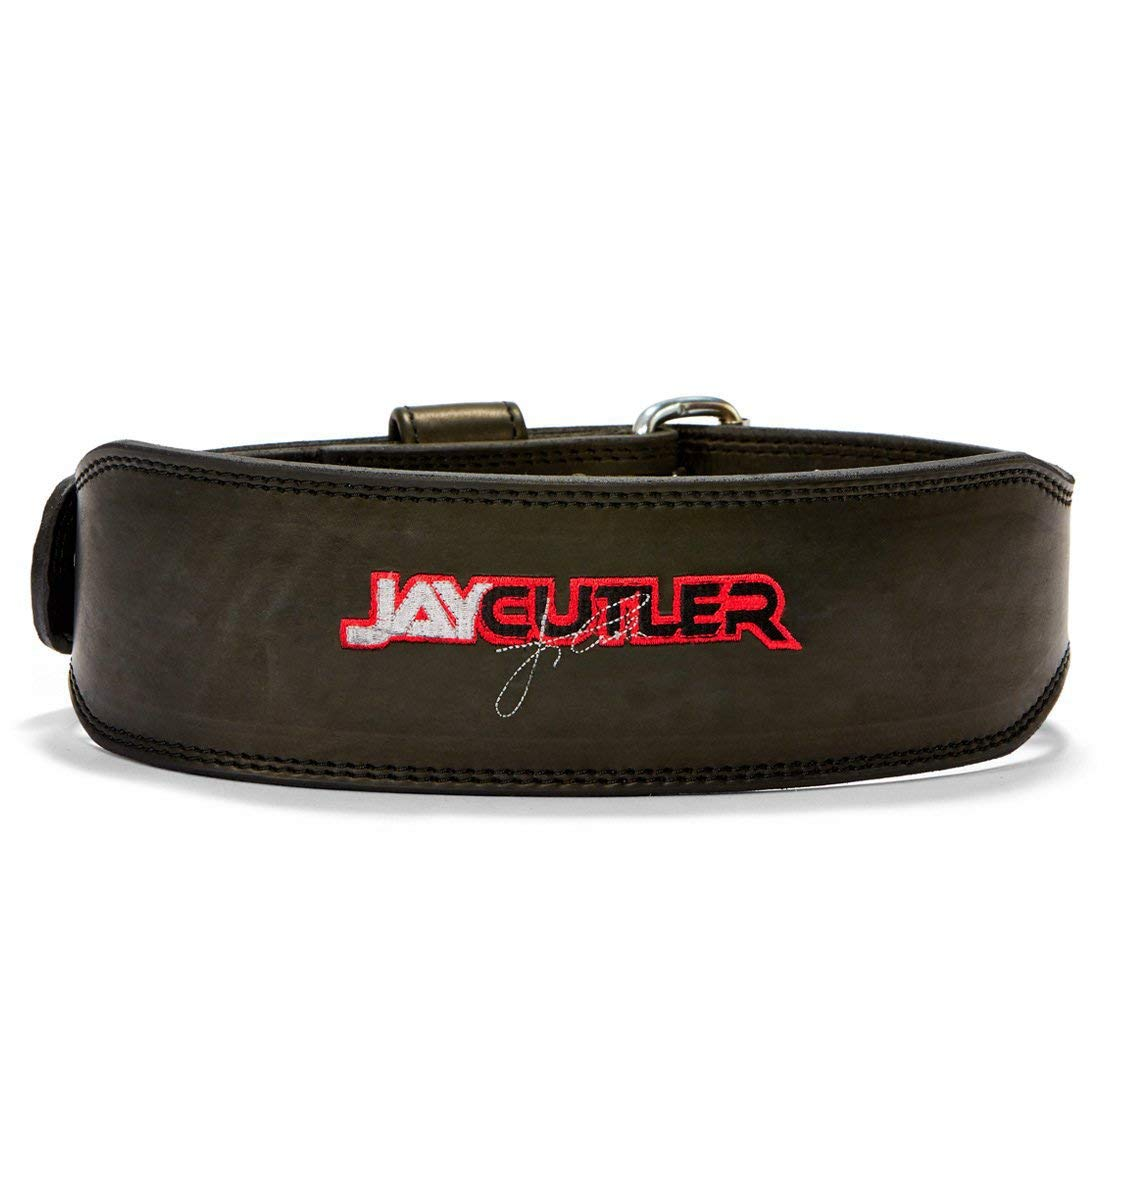 Sport-Bandagen & -Gelenkstützen Black Large Schiek Sports Model J2014  Leather Jay Cutler Lifting Belt Fitness & Laufbekleidung